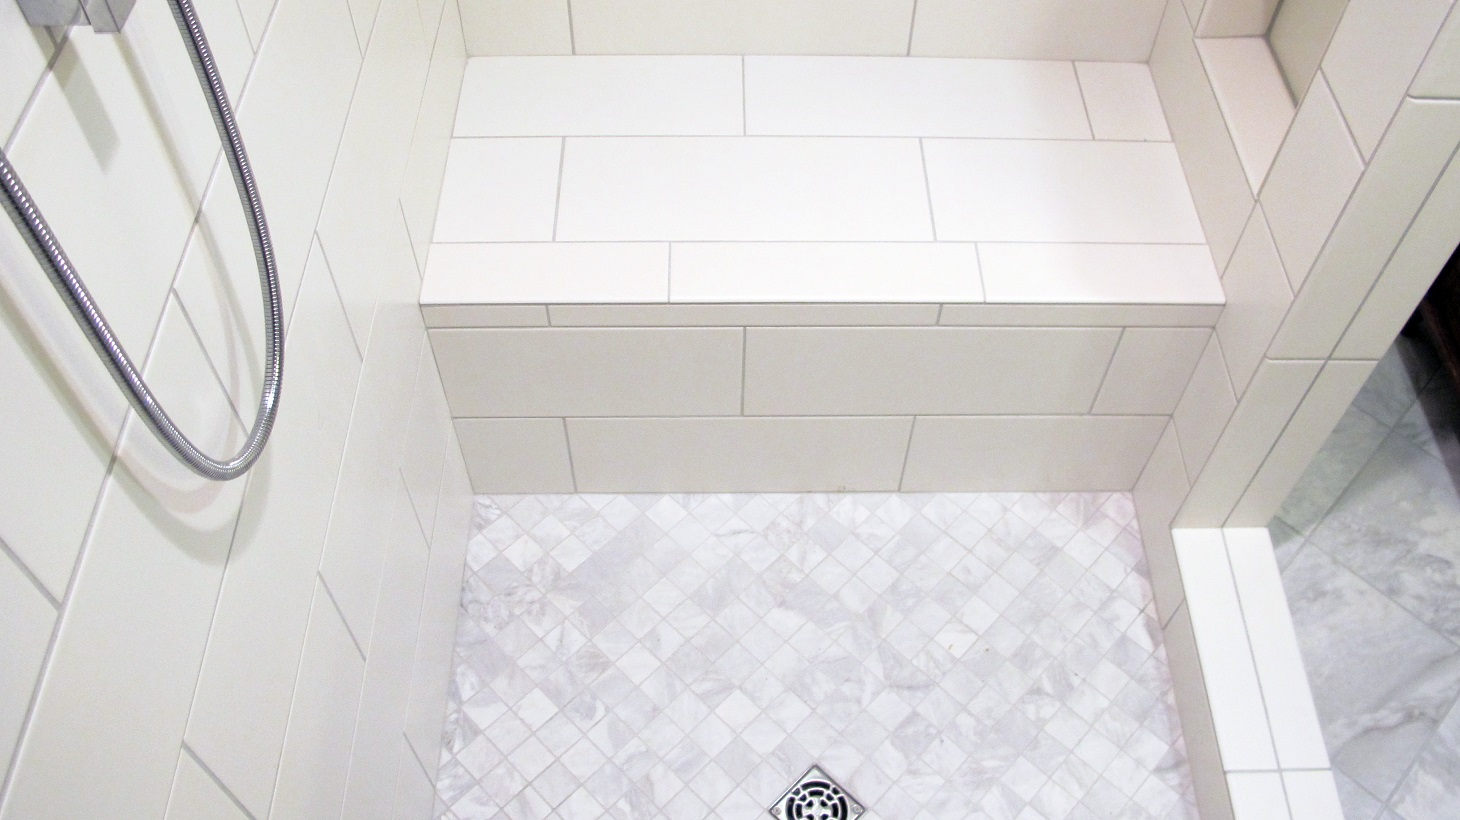 Tiled Shower Seat Design | Home Decor & Renovation Ideas